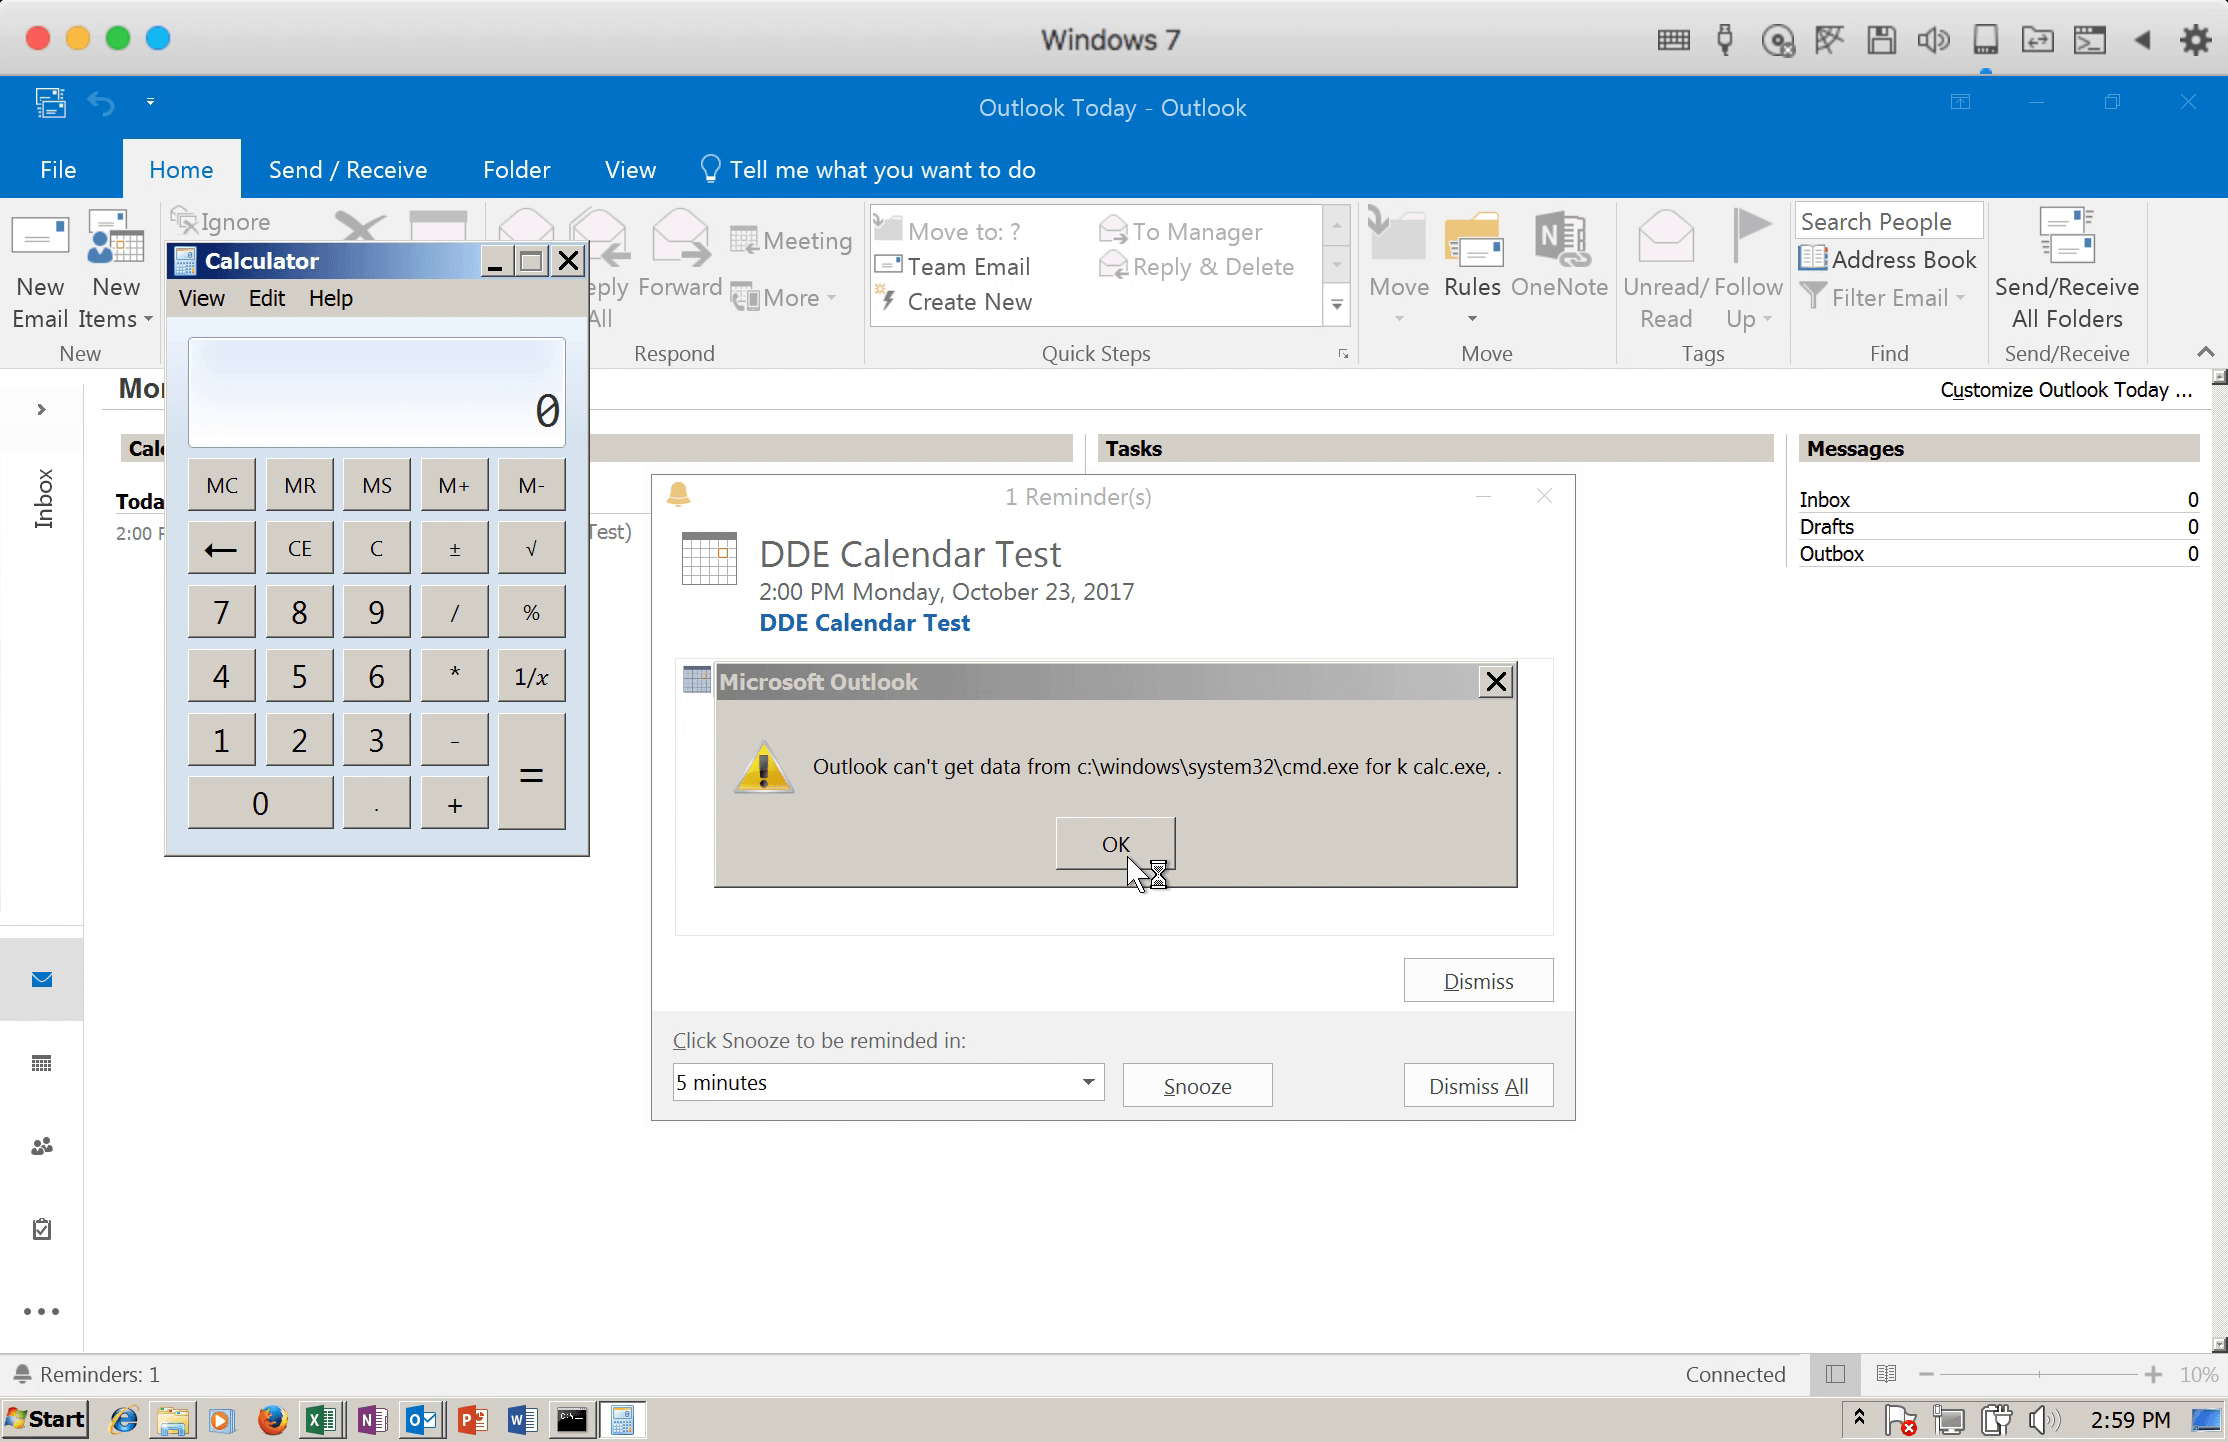 Email Malware - Without Outlook Macros or Attachments